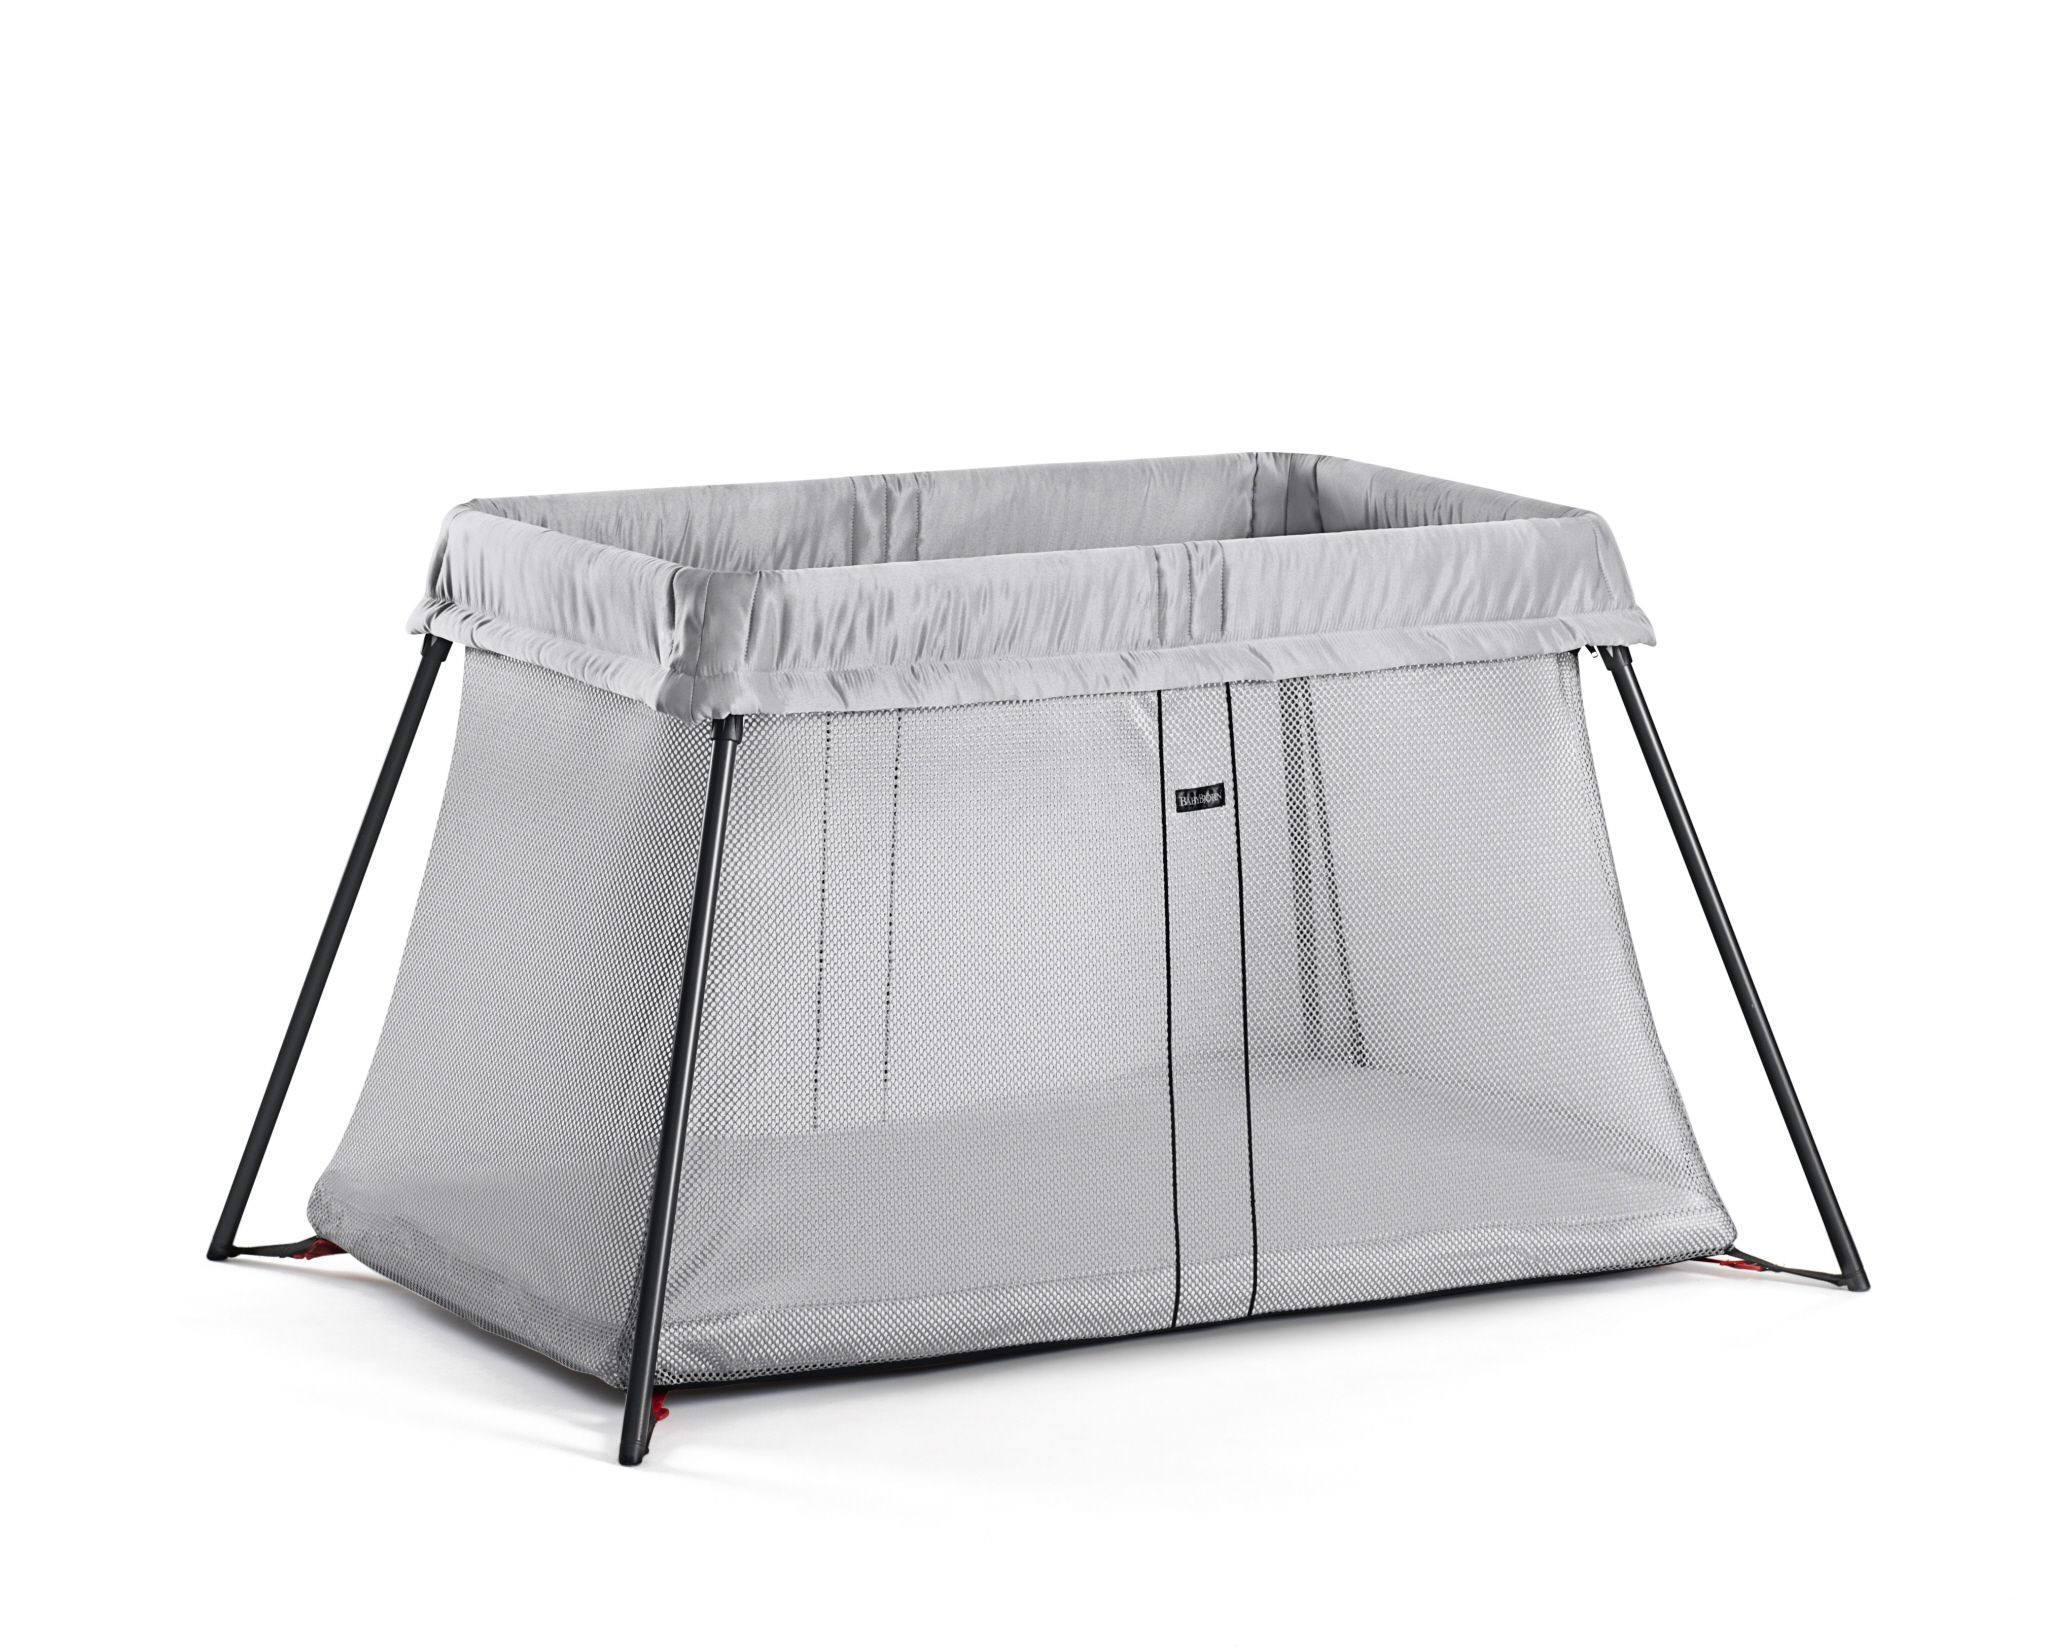 lit parapluie light babybjorn avis. Black Bedroom Furniture Sets. Home Design Ideas